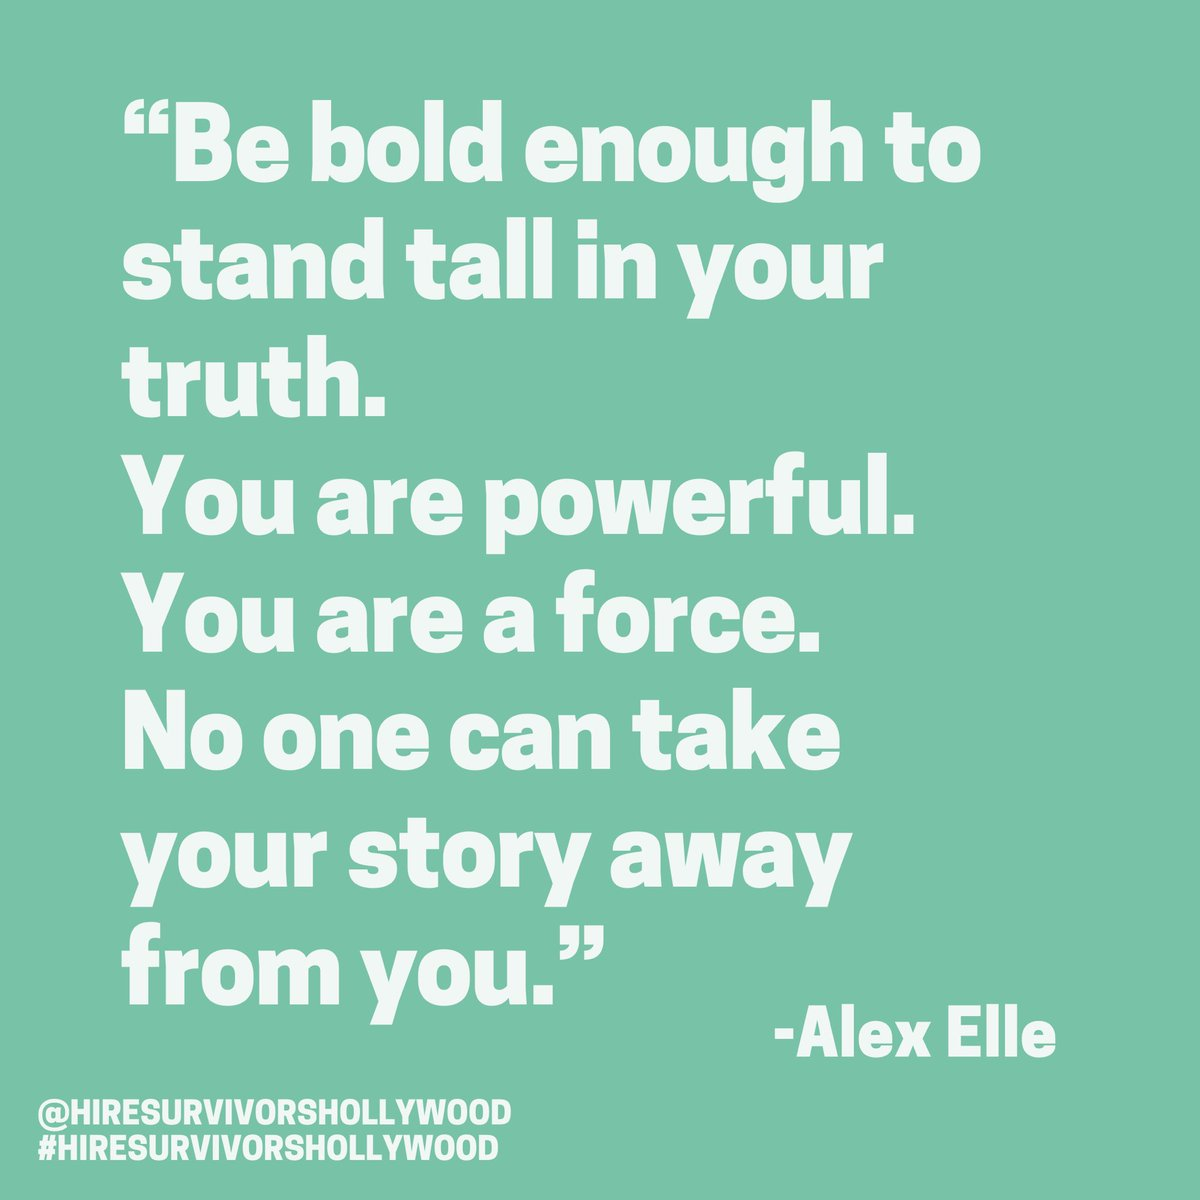 """Today's #MondayMotivation comes from @_alexelle , survivor, advocate and author of """"After The Rain"""". Thank you for sharing your truth, your power, and your story. 🙌🏼  #mondayquotes #mondaymood #mondayvibes #metoo #survivor #survivors #silencebreakers #love #alexelle #alexellepoem"""